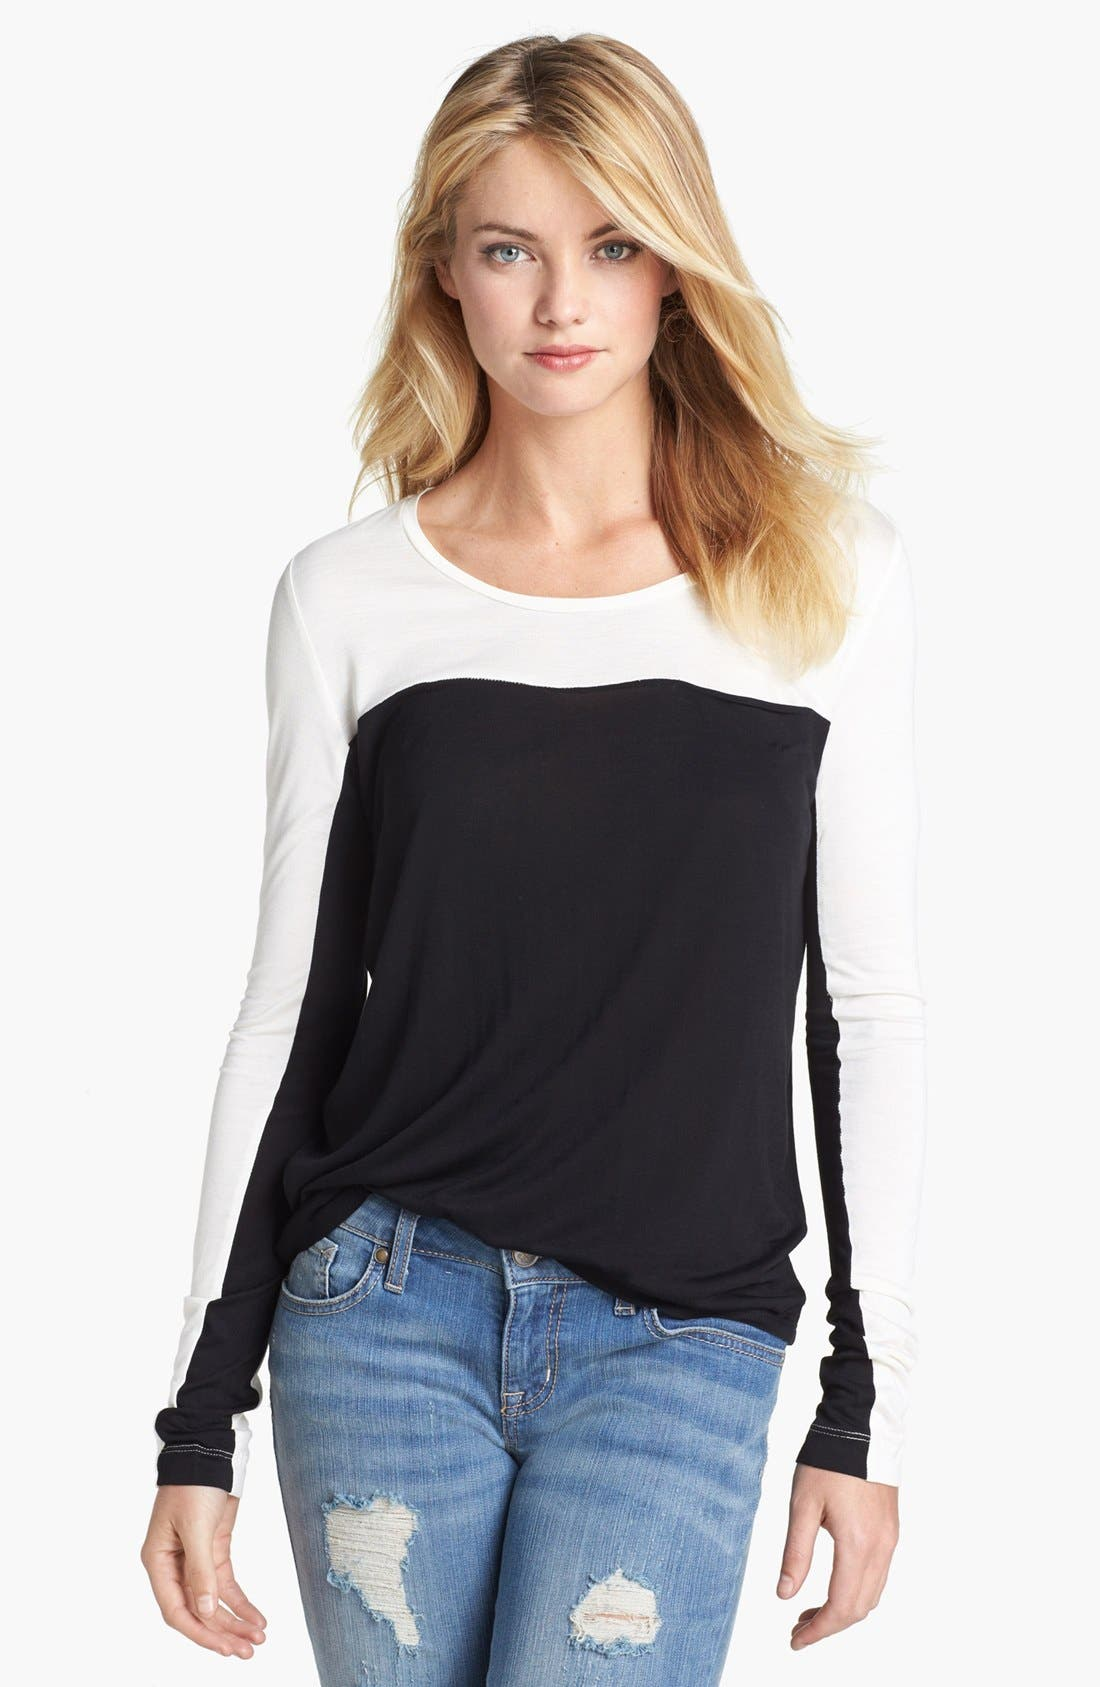 Alternate Image 1 Selected - Two by Vince Camuto Colorblock Top